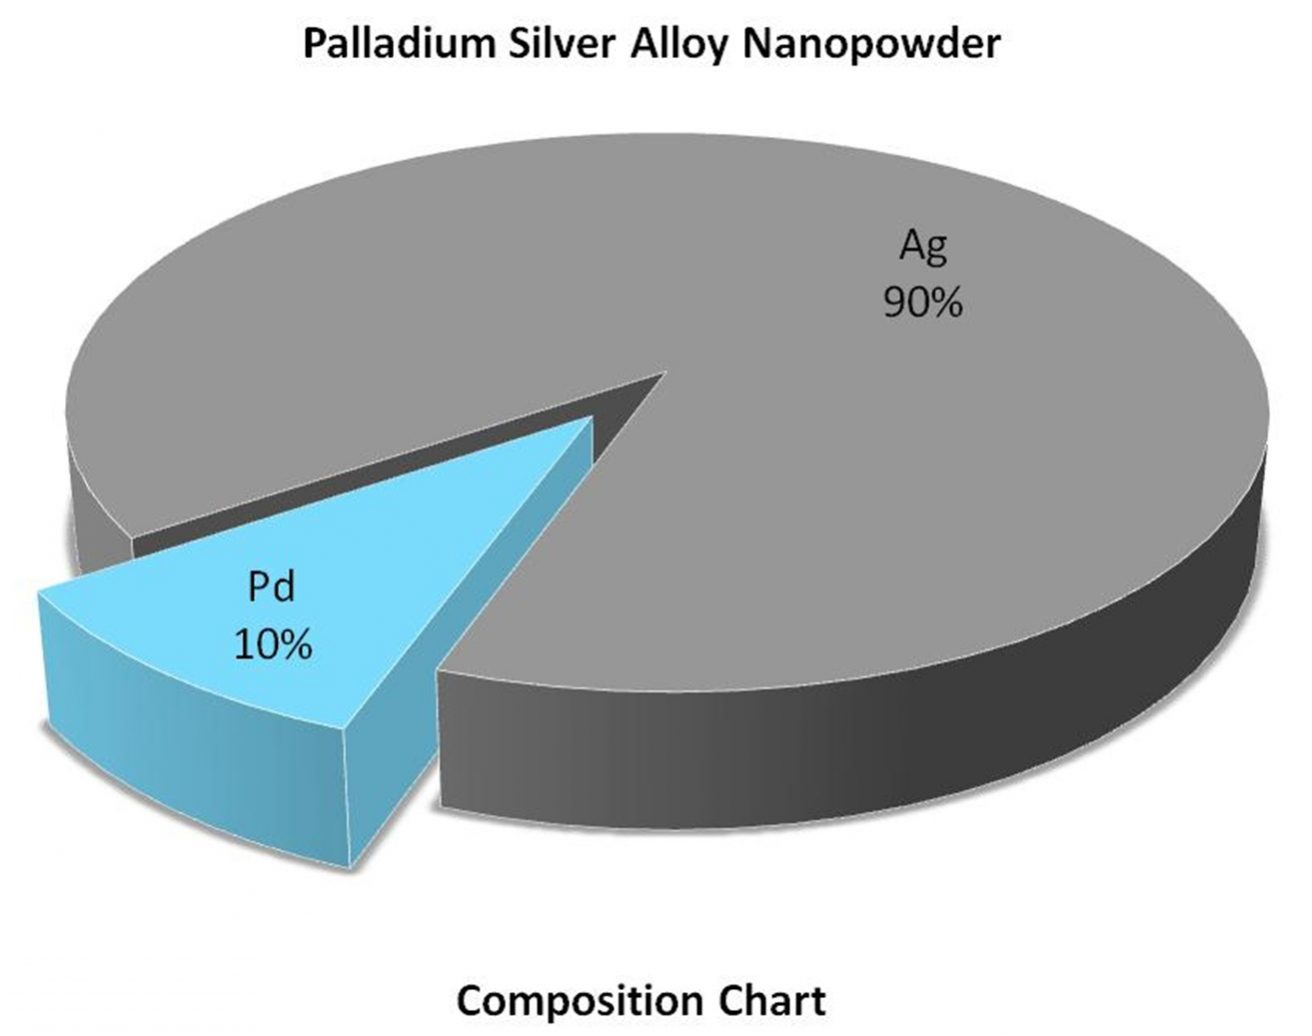 Composition Chart - Ag:Pd Alloy Nanoparticles